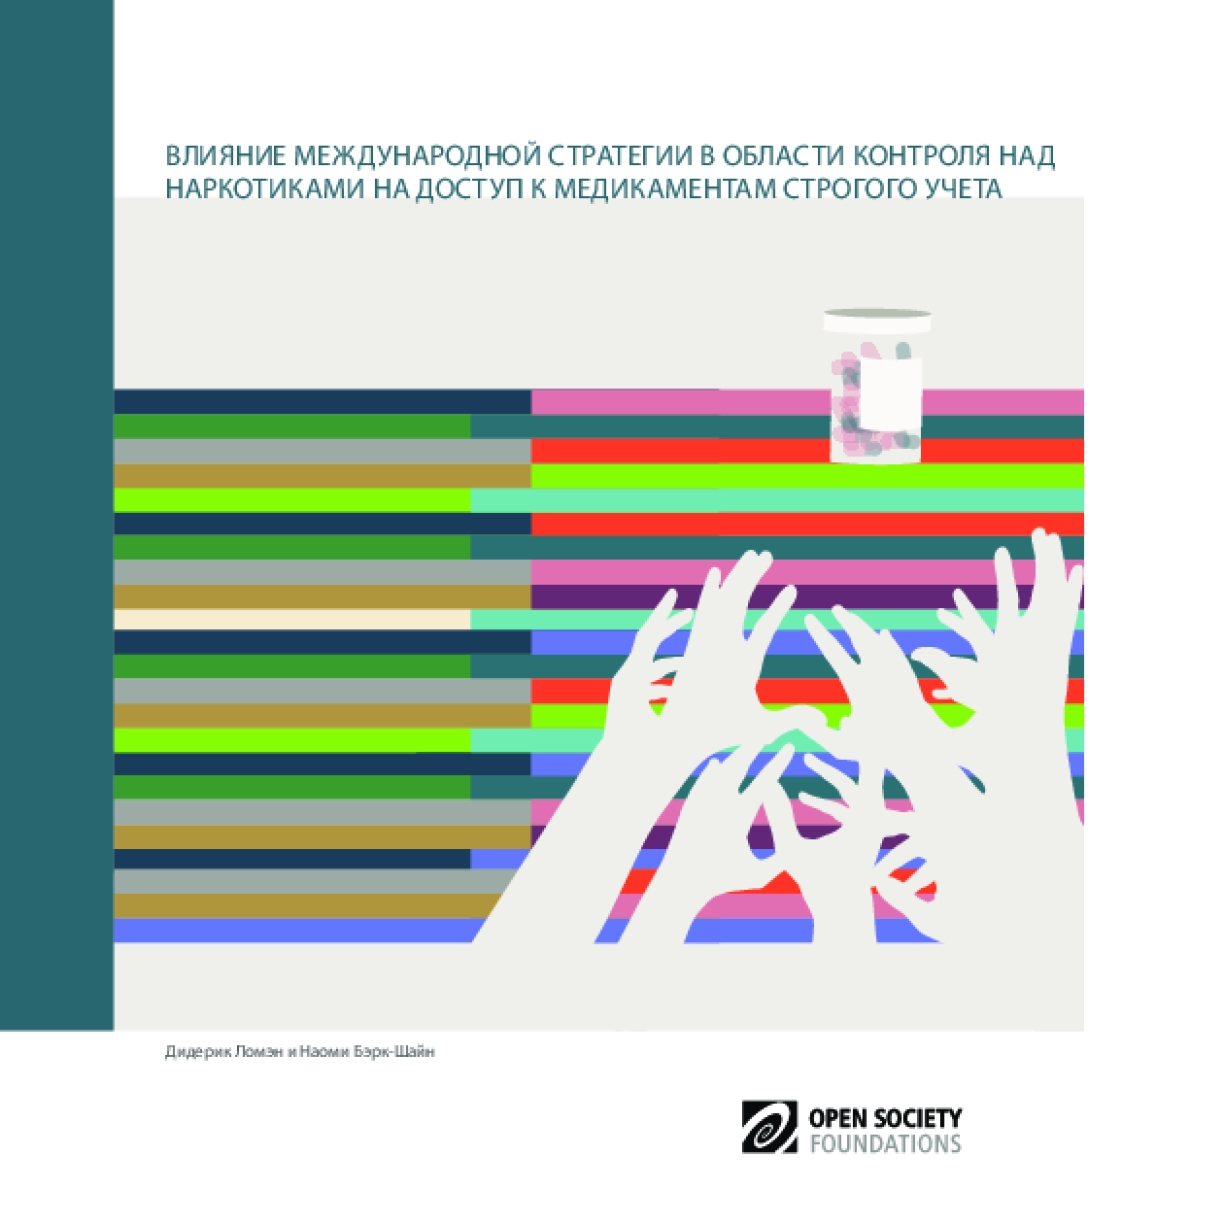 The Impact of International Drug Policy on Access to Controlled Medicines: Russian